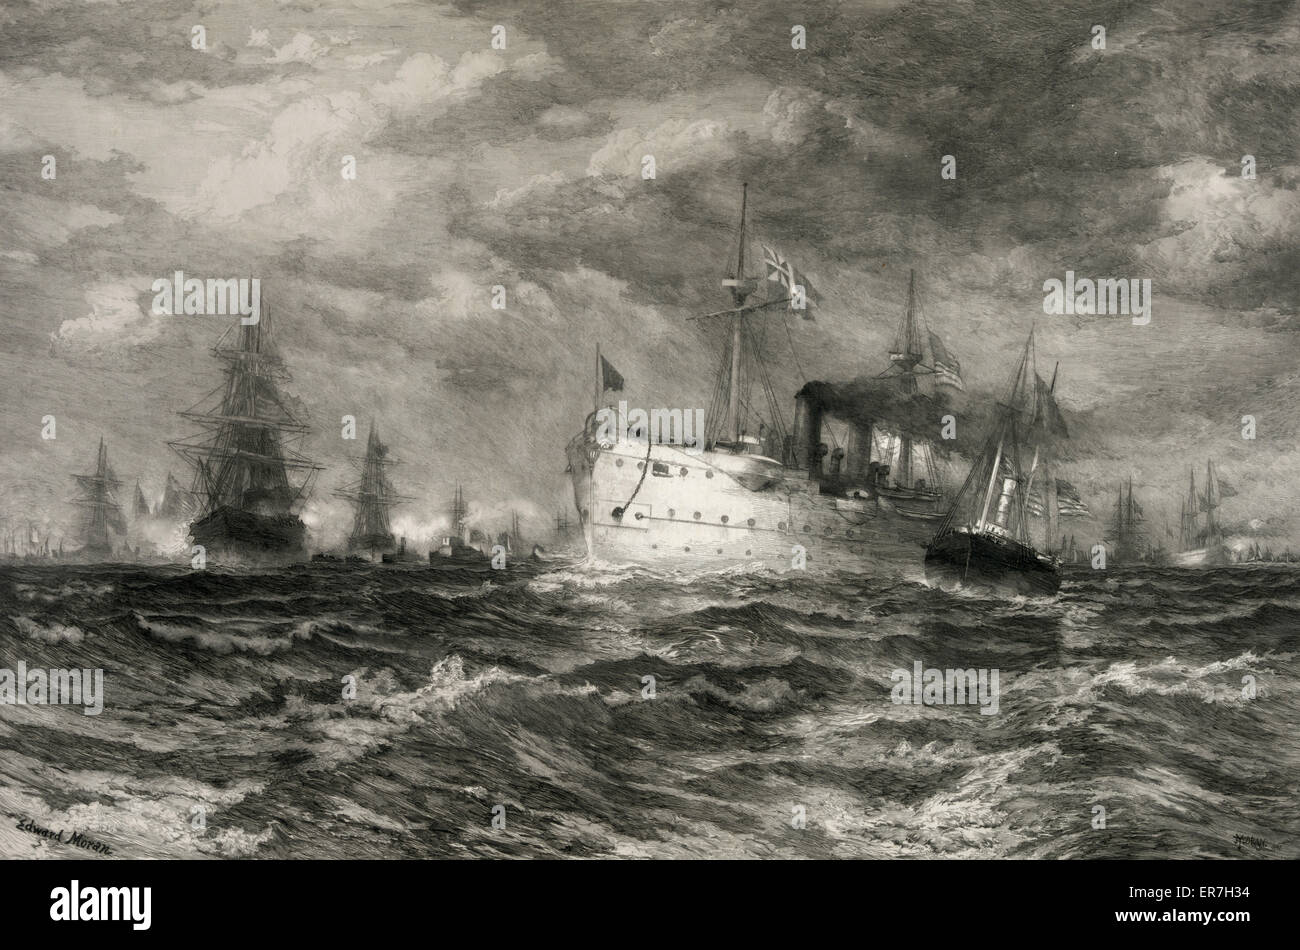 The White Squadron's Farewell Salute to the Body of John Ericsson, New York Bay, August 23, 1890. Date ca. 1900. - Stock Image